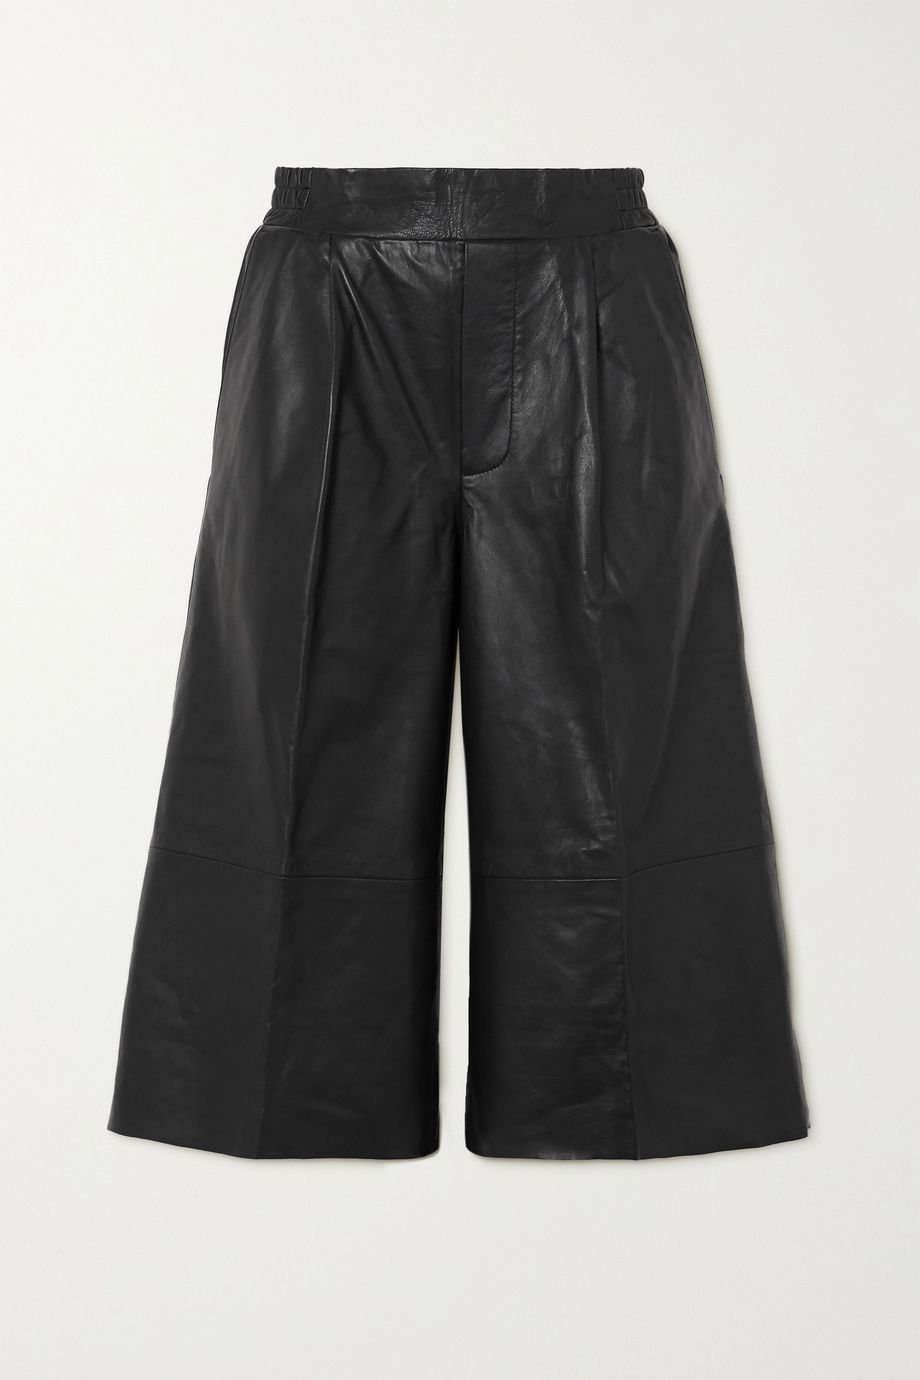 REMAIN Birger Christensen Leather shorts